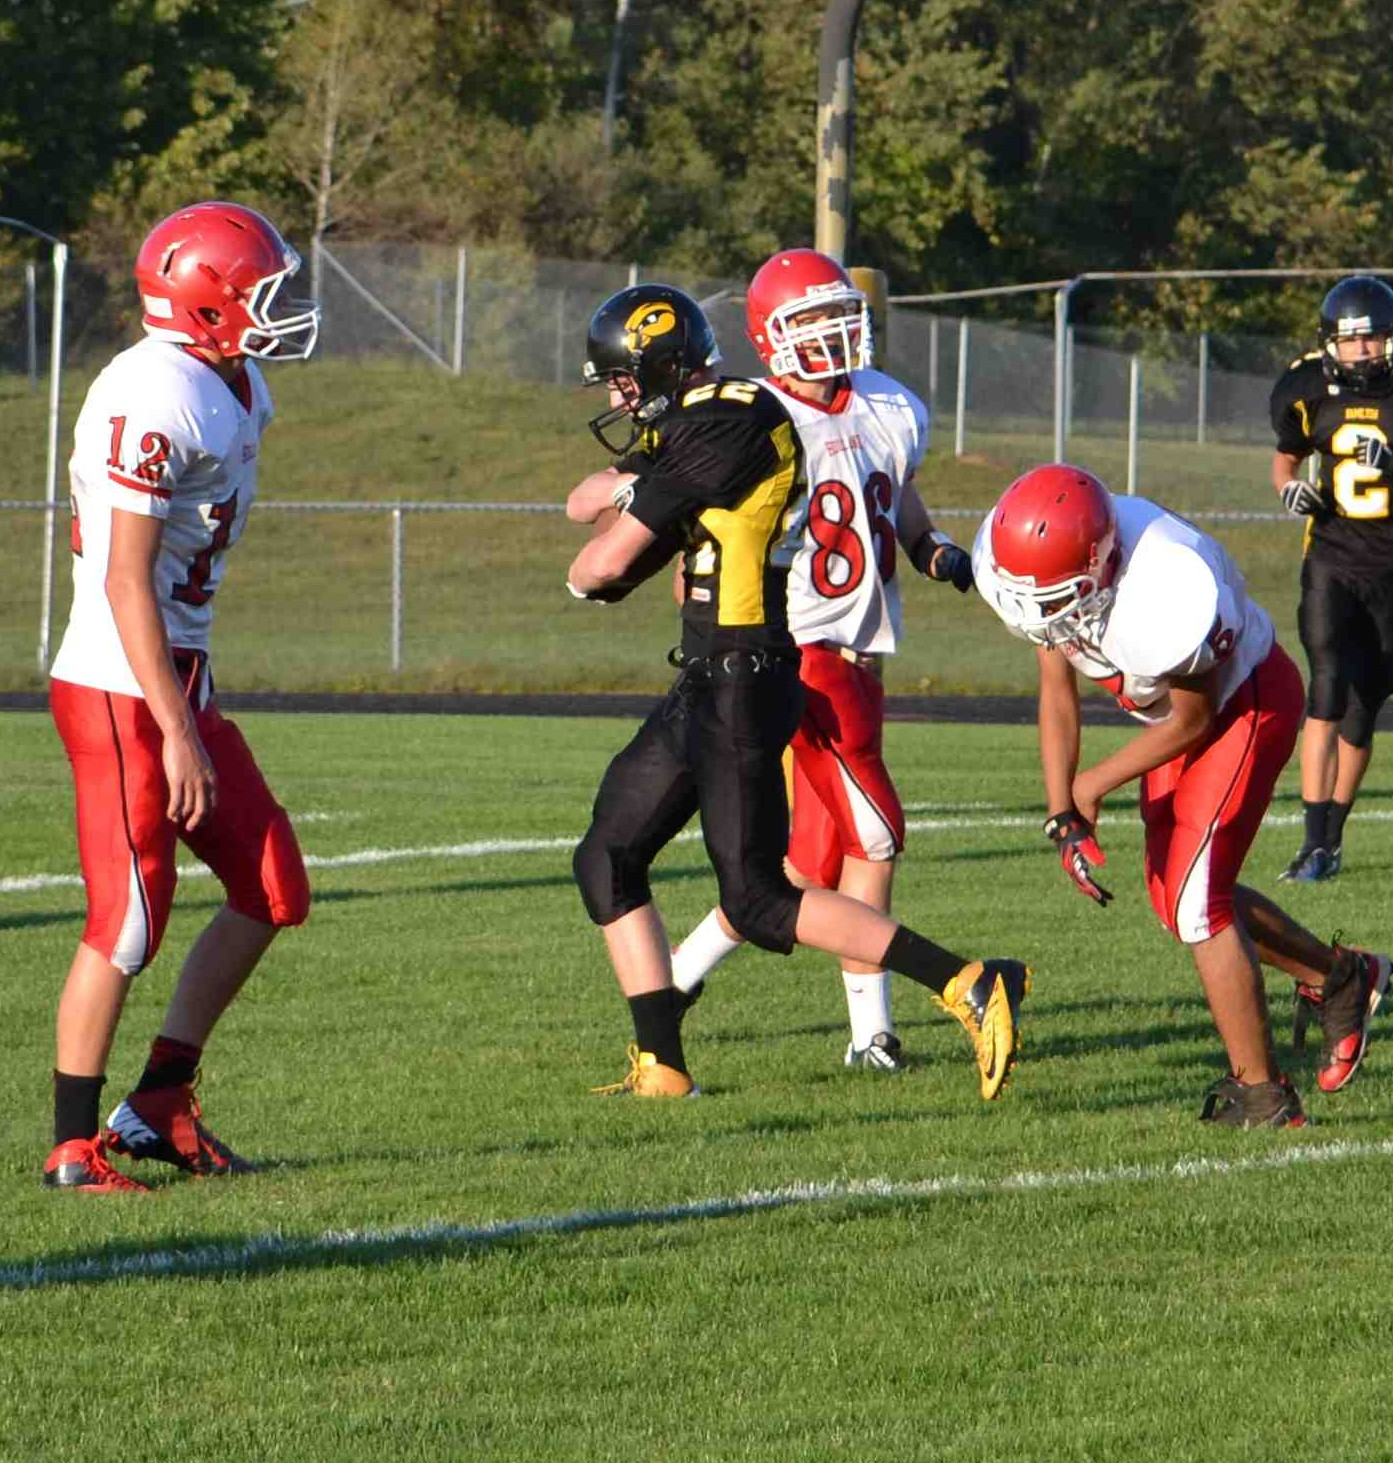 Colton Becksvoort is into the endzone.